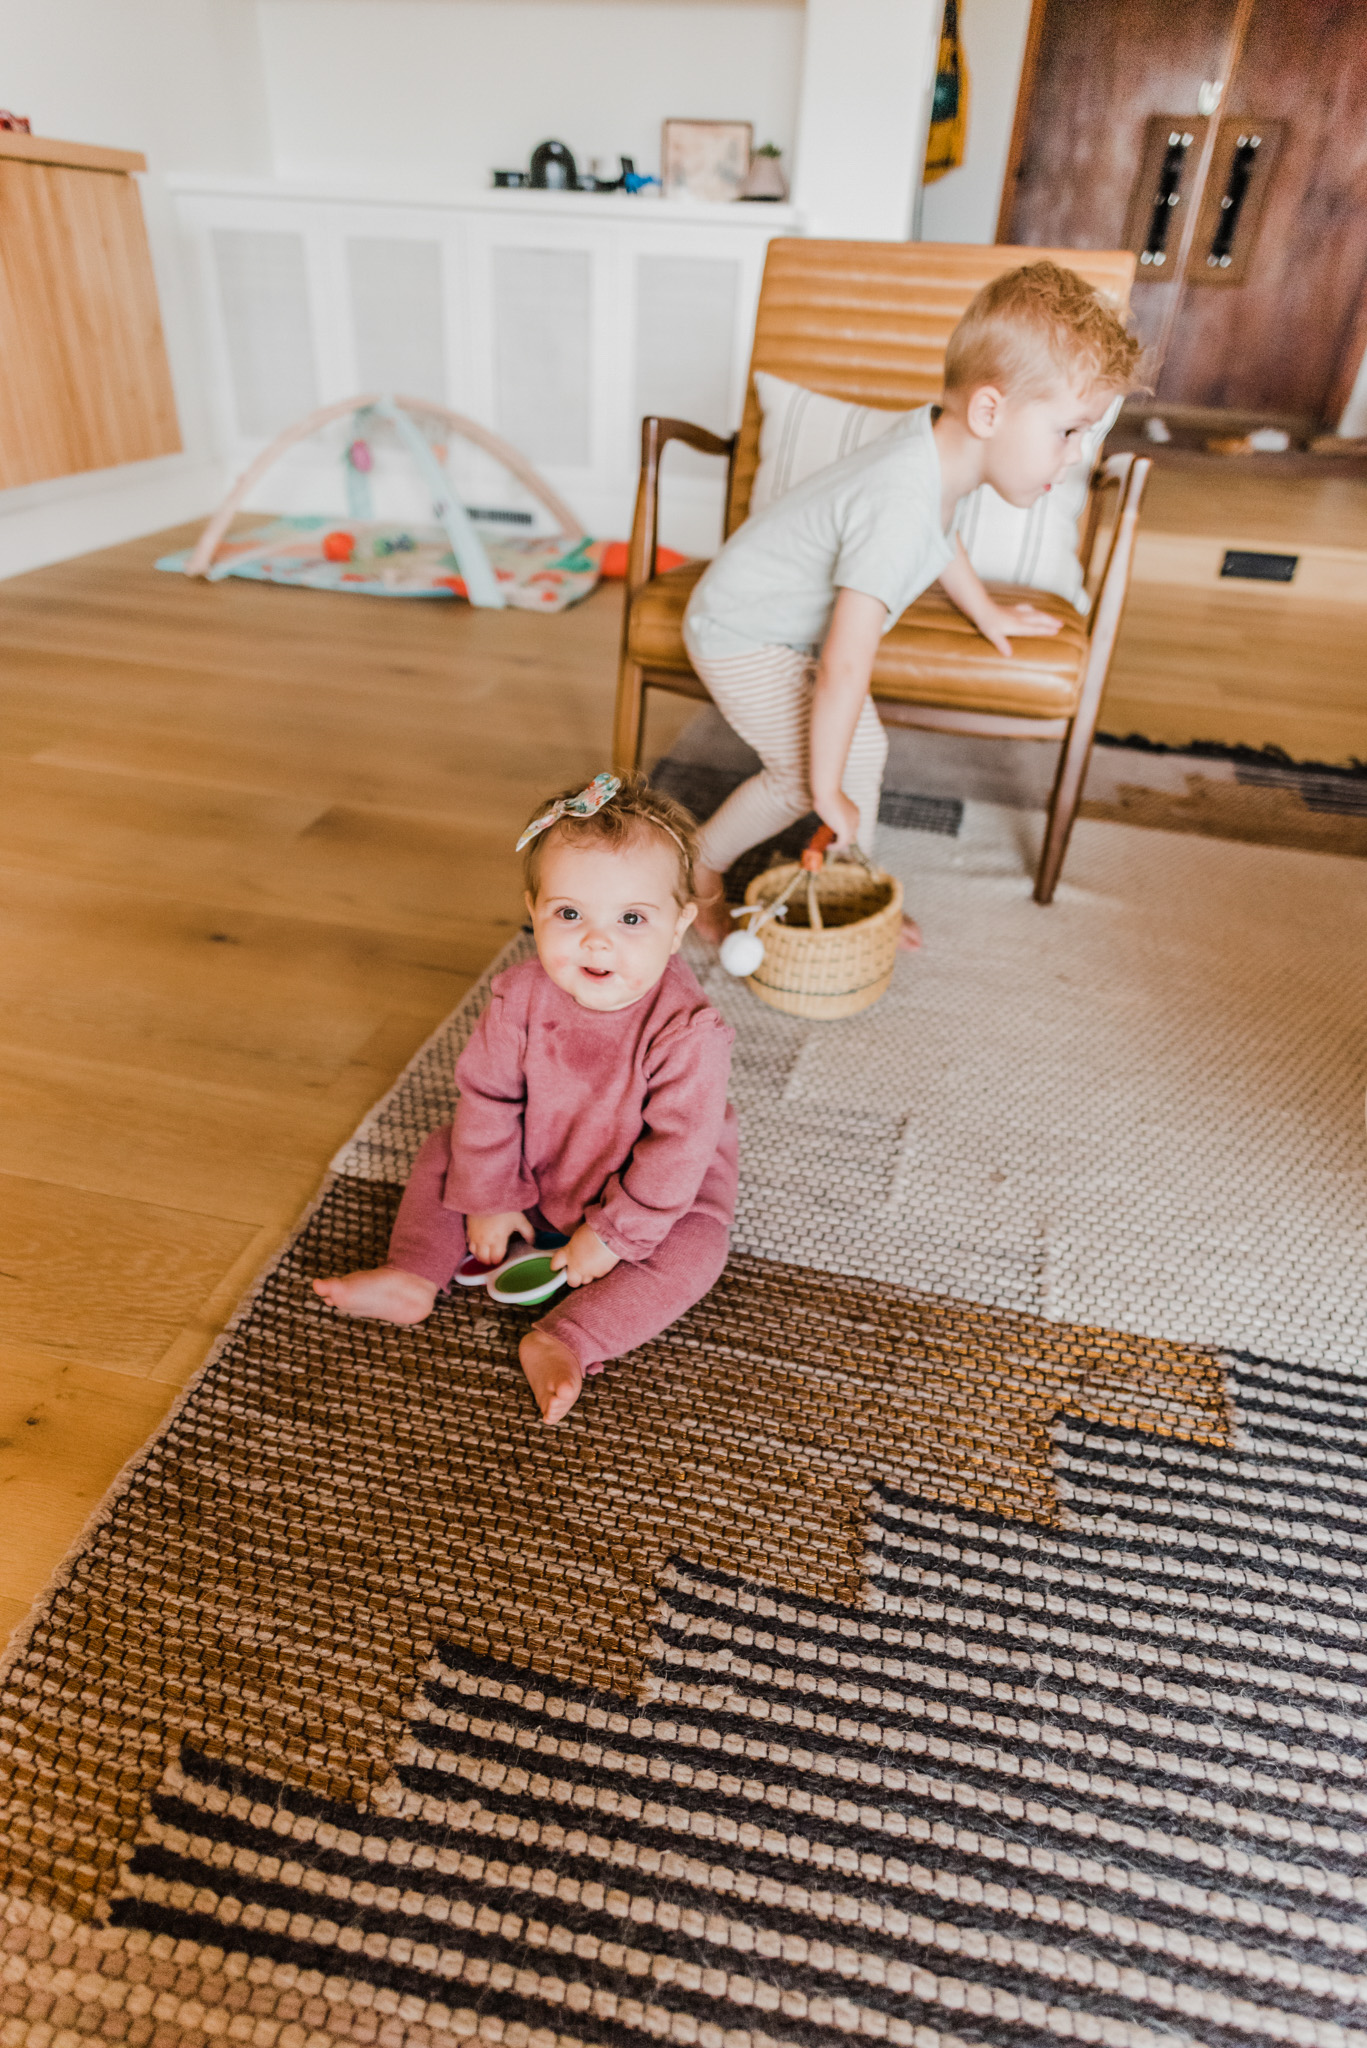 Easter Basket Gift Ideas by popular San Diego lifestyle blog, Navy Grace: image of a baby girl and young boy playing with toys on the floor.